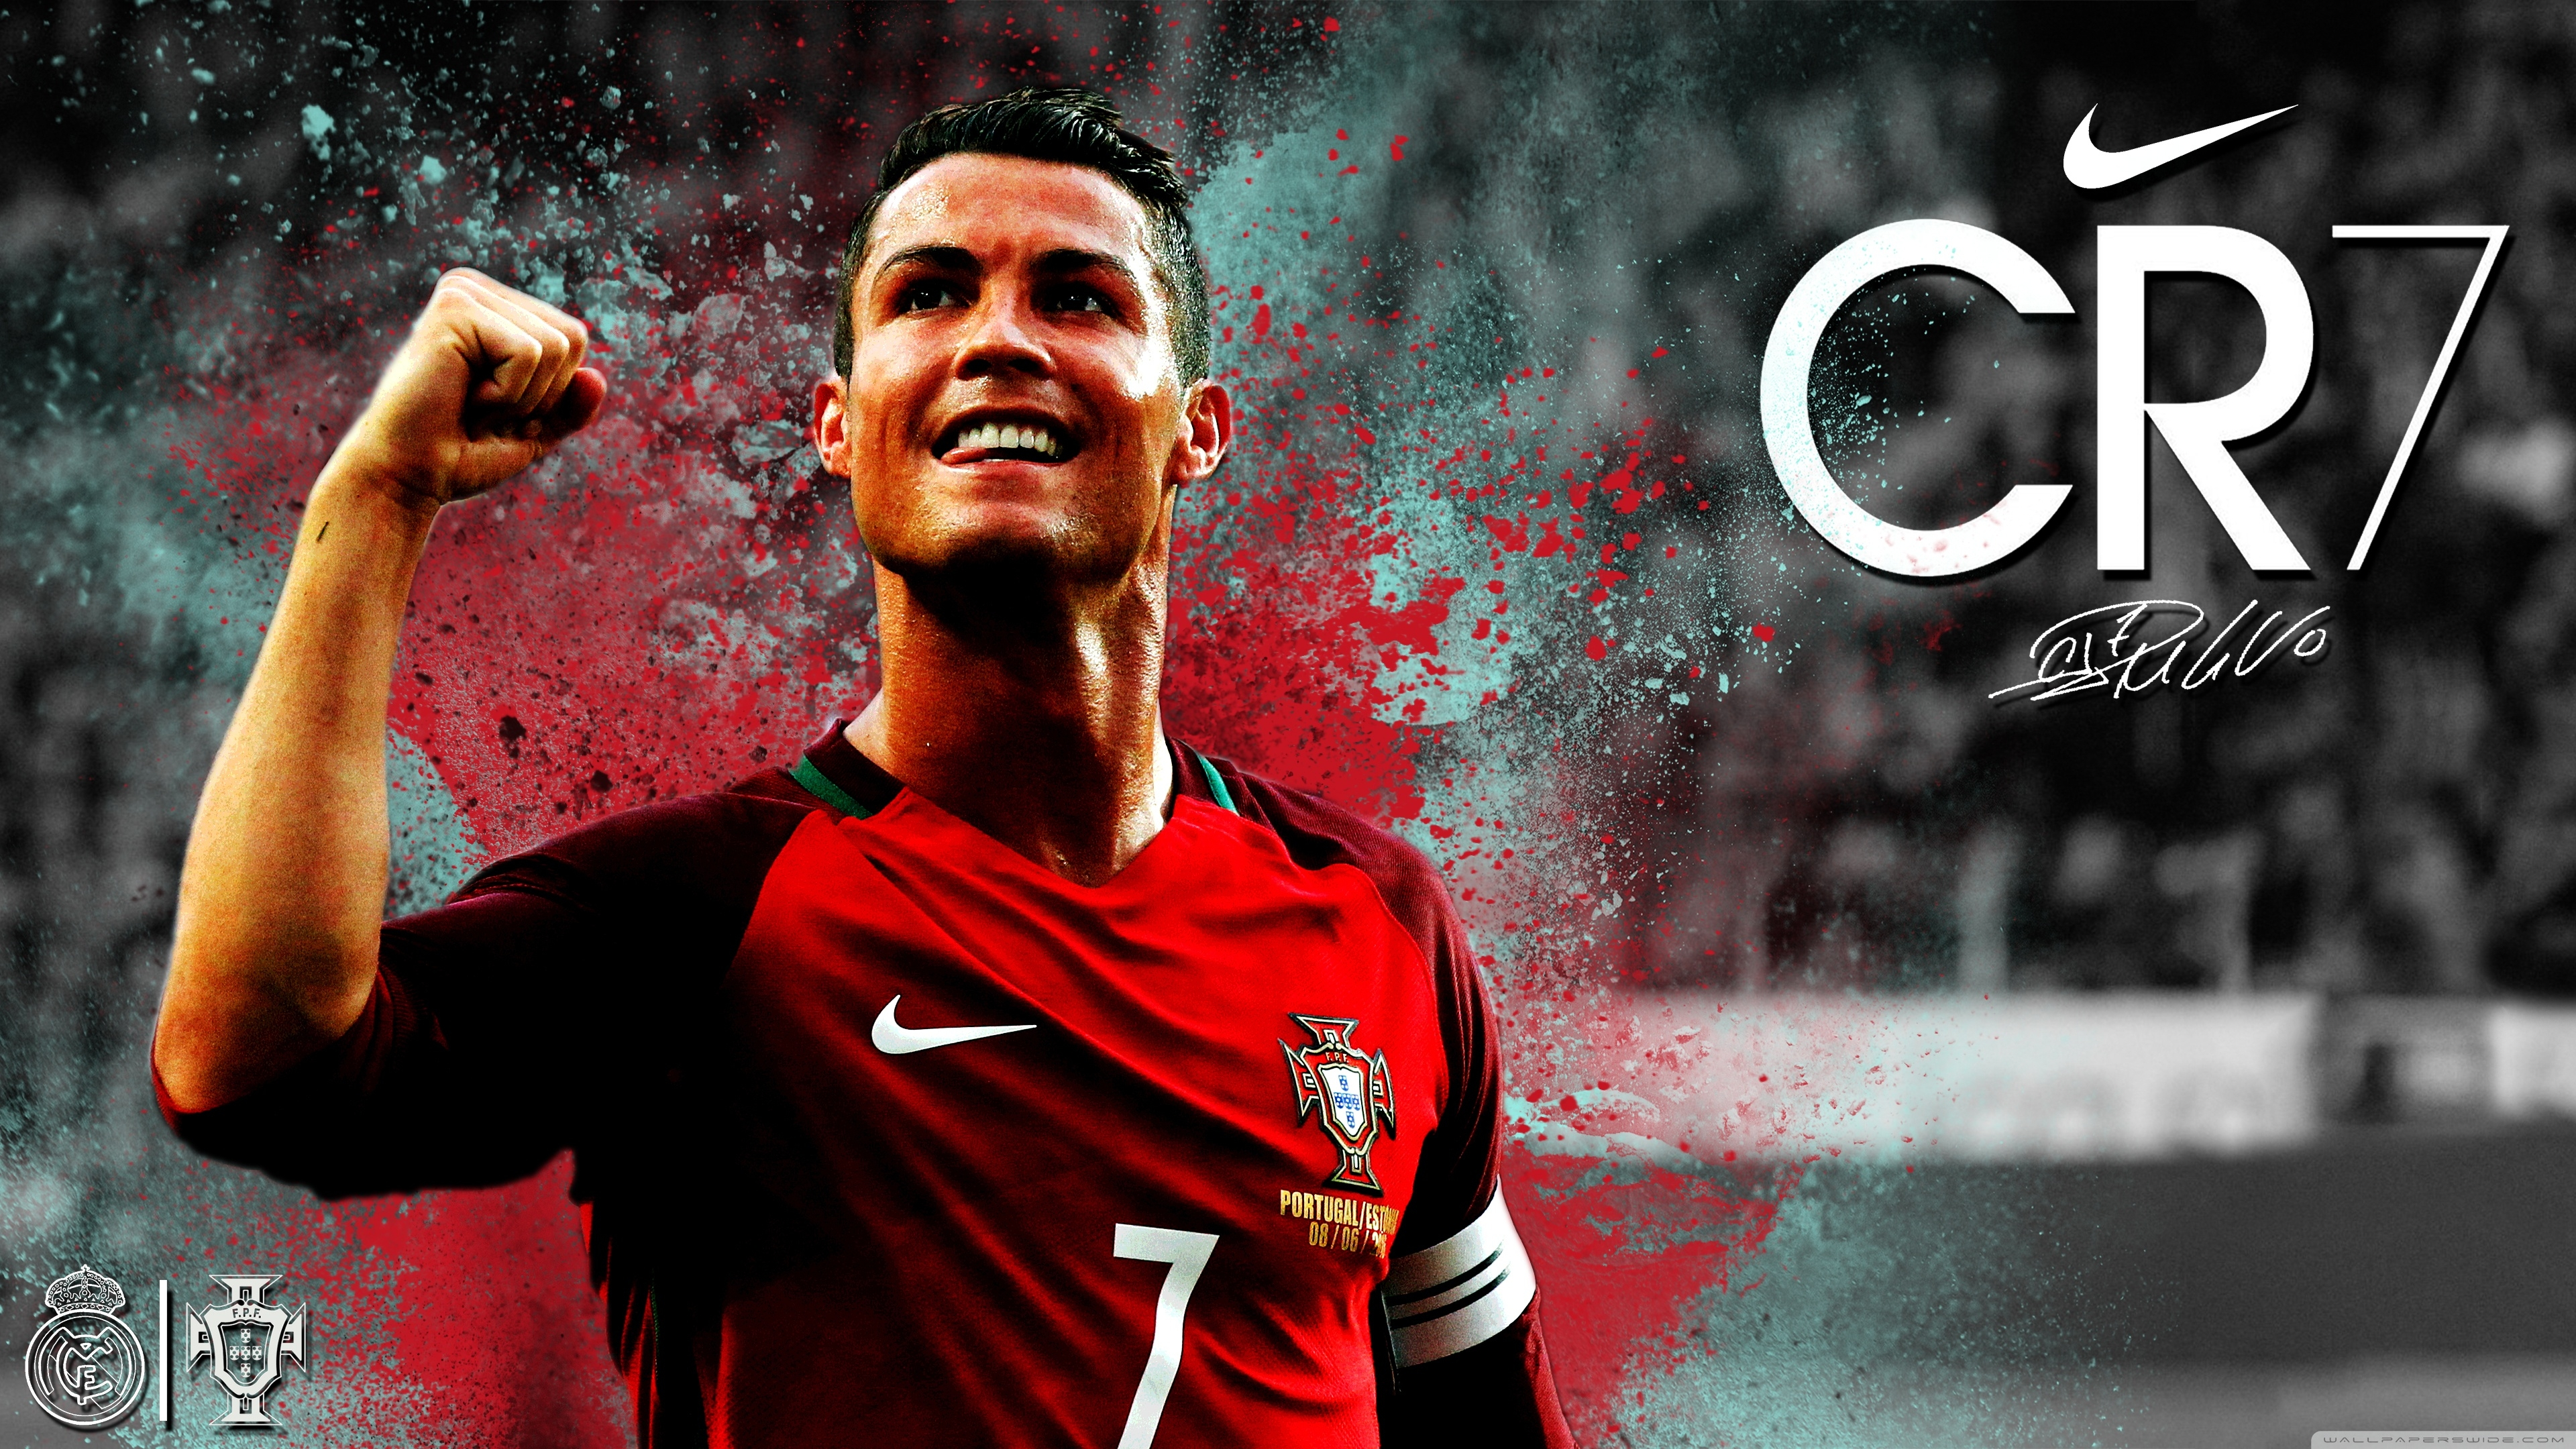 Get Cr7 Hd Wallpapers 4K